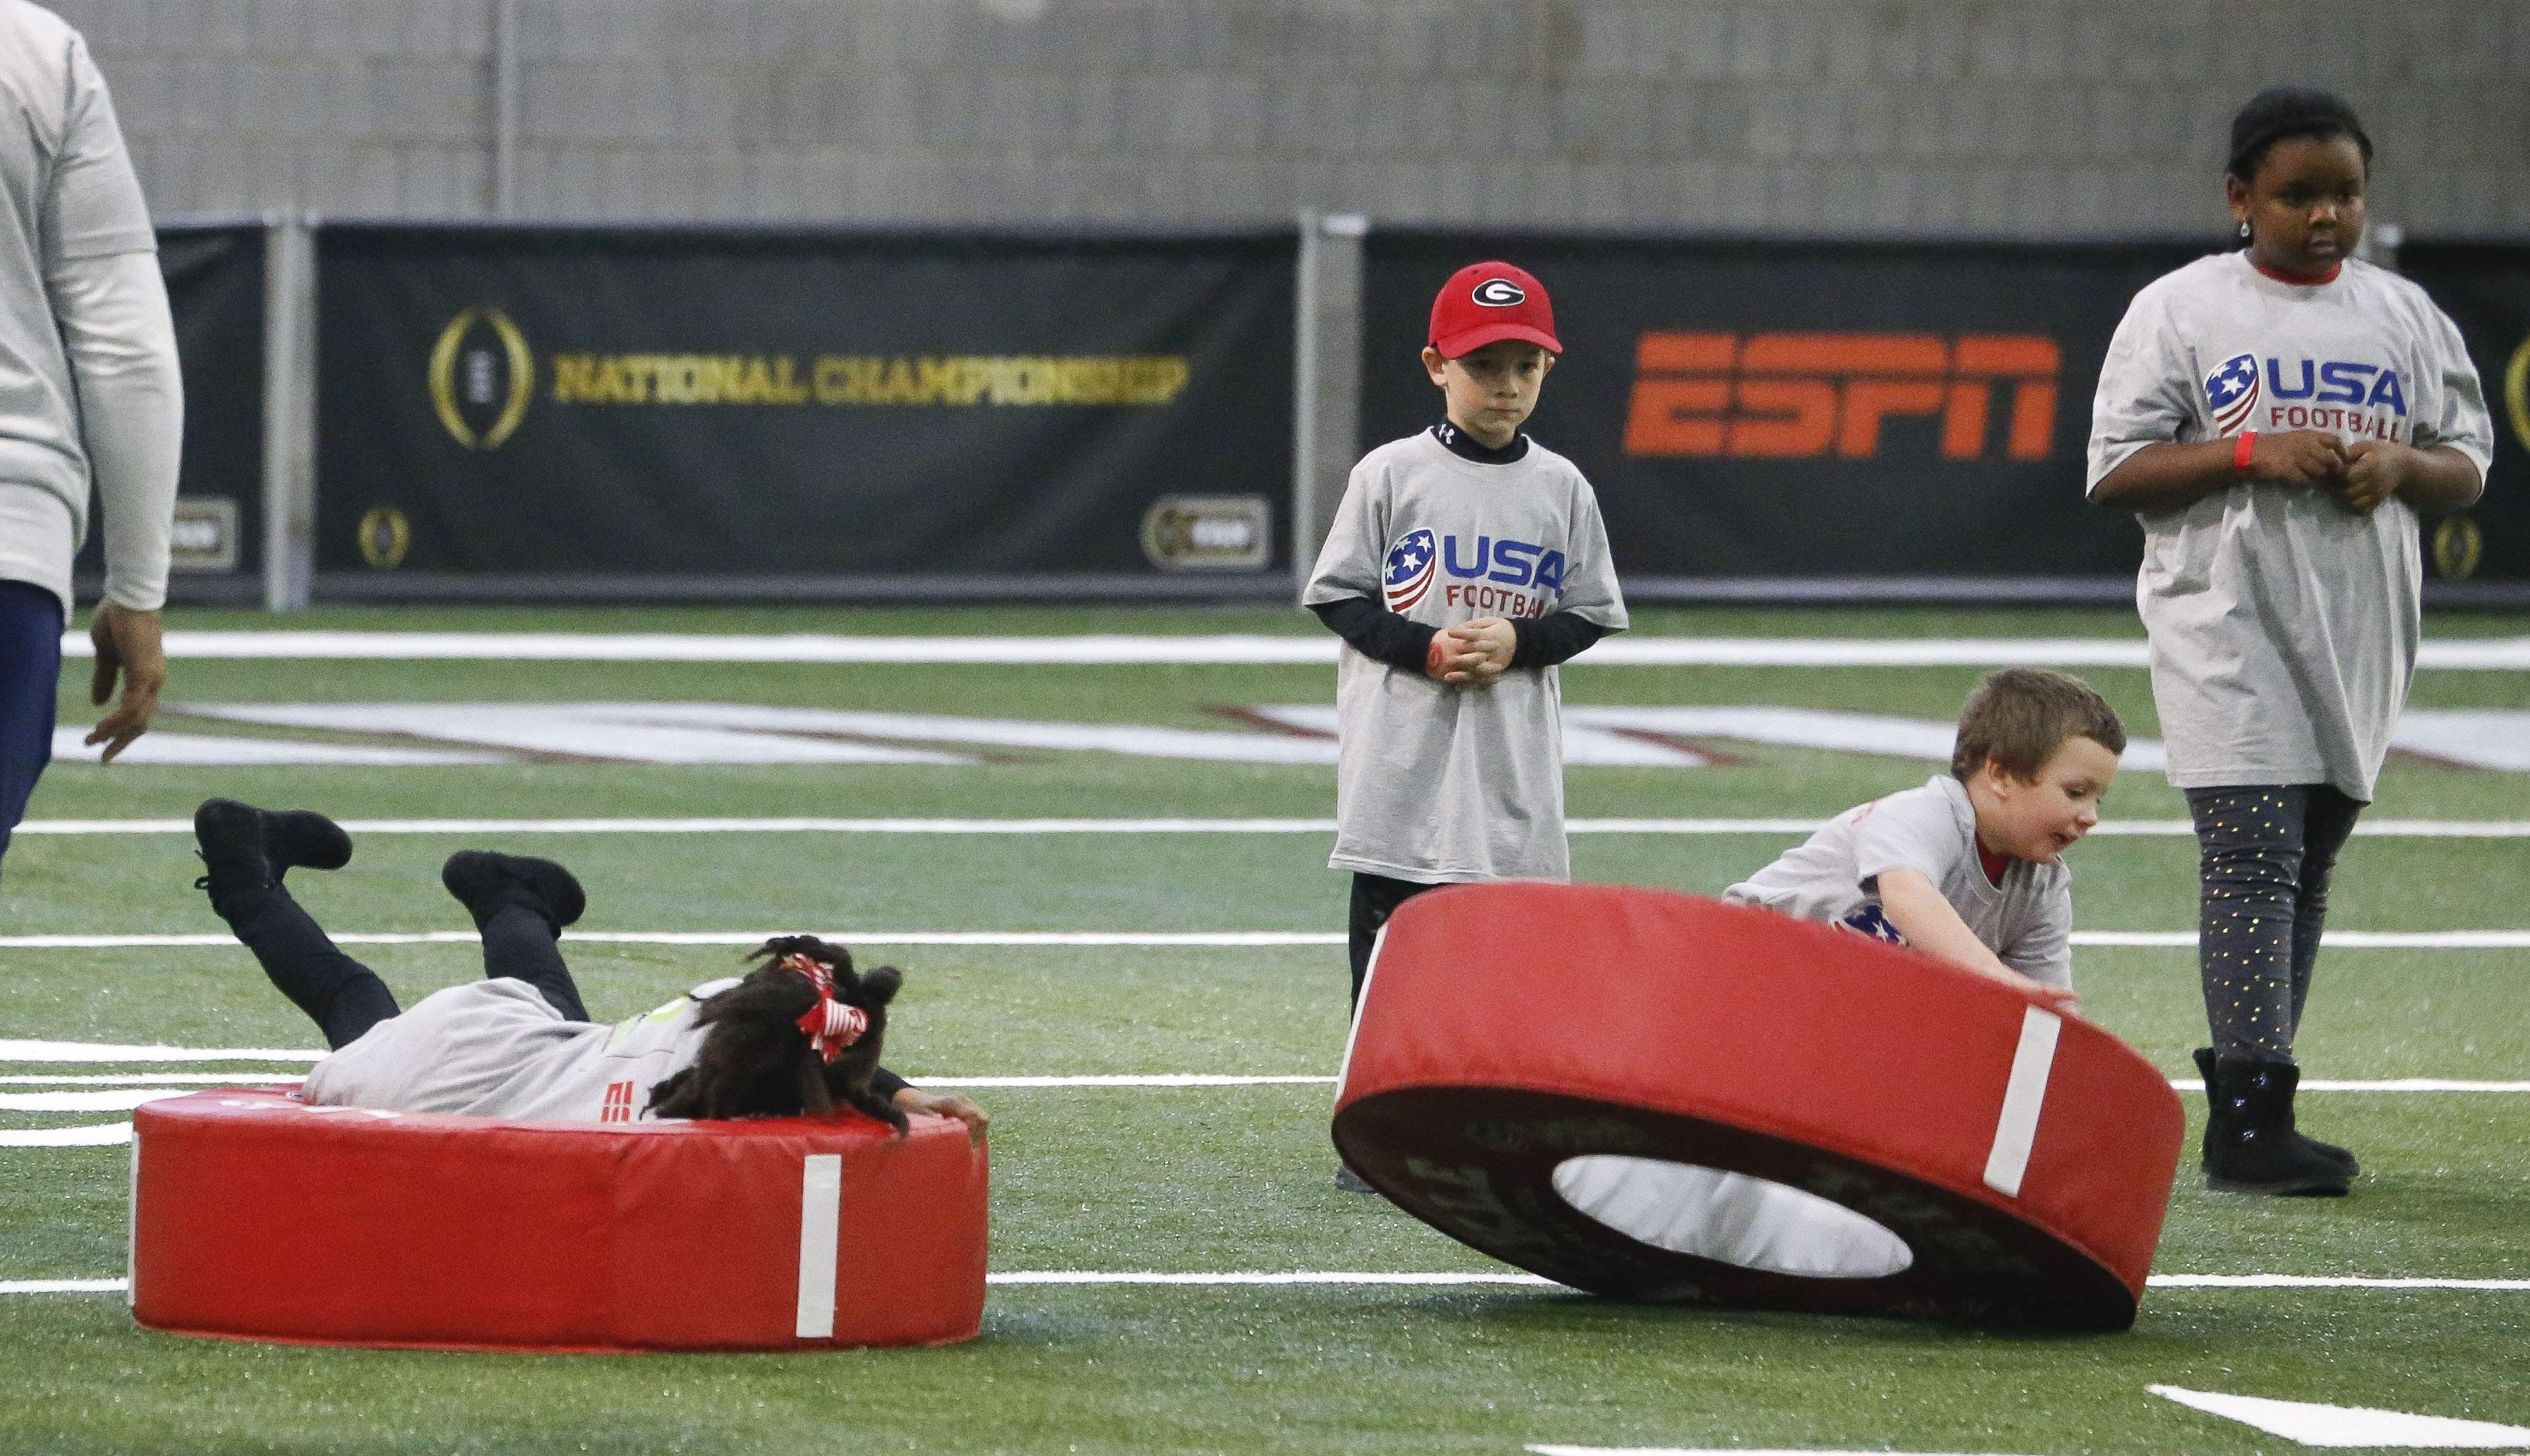 Kids enjoy interactive football activities as Alabama and Georgia fans enjoy activities at the Georgia World Congress Center Sunday, Jan. 7, 2018. [Gary Cosby Jr./The Tuscaloosa News]